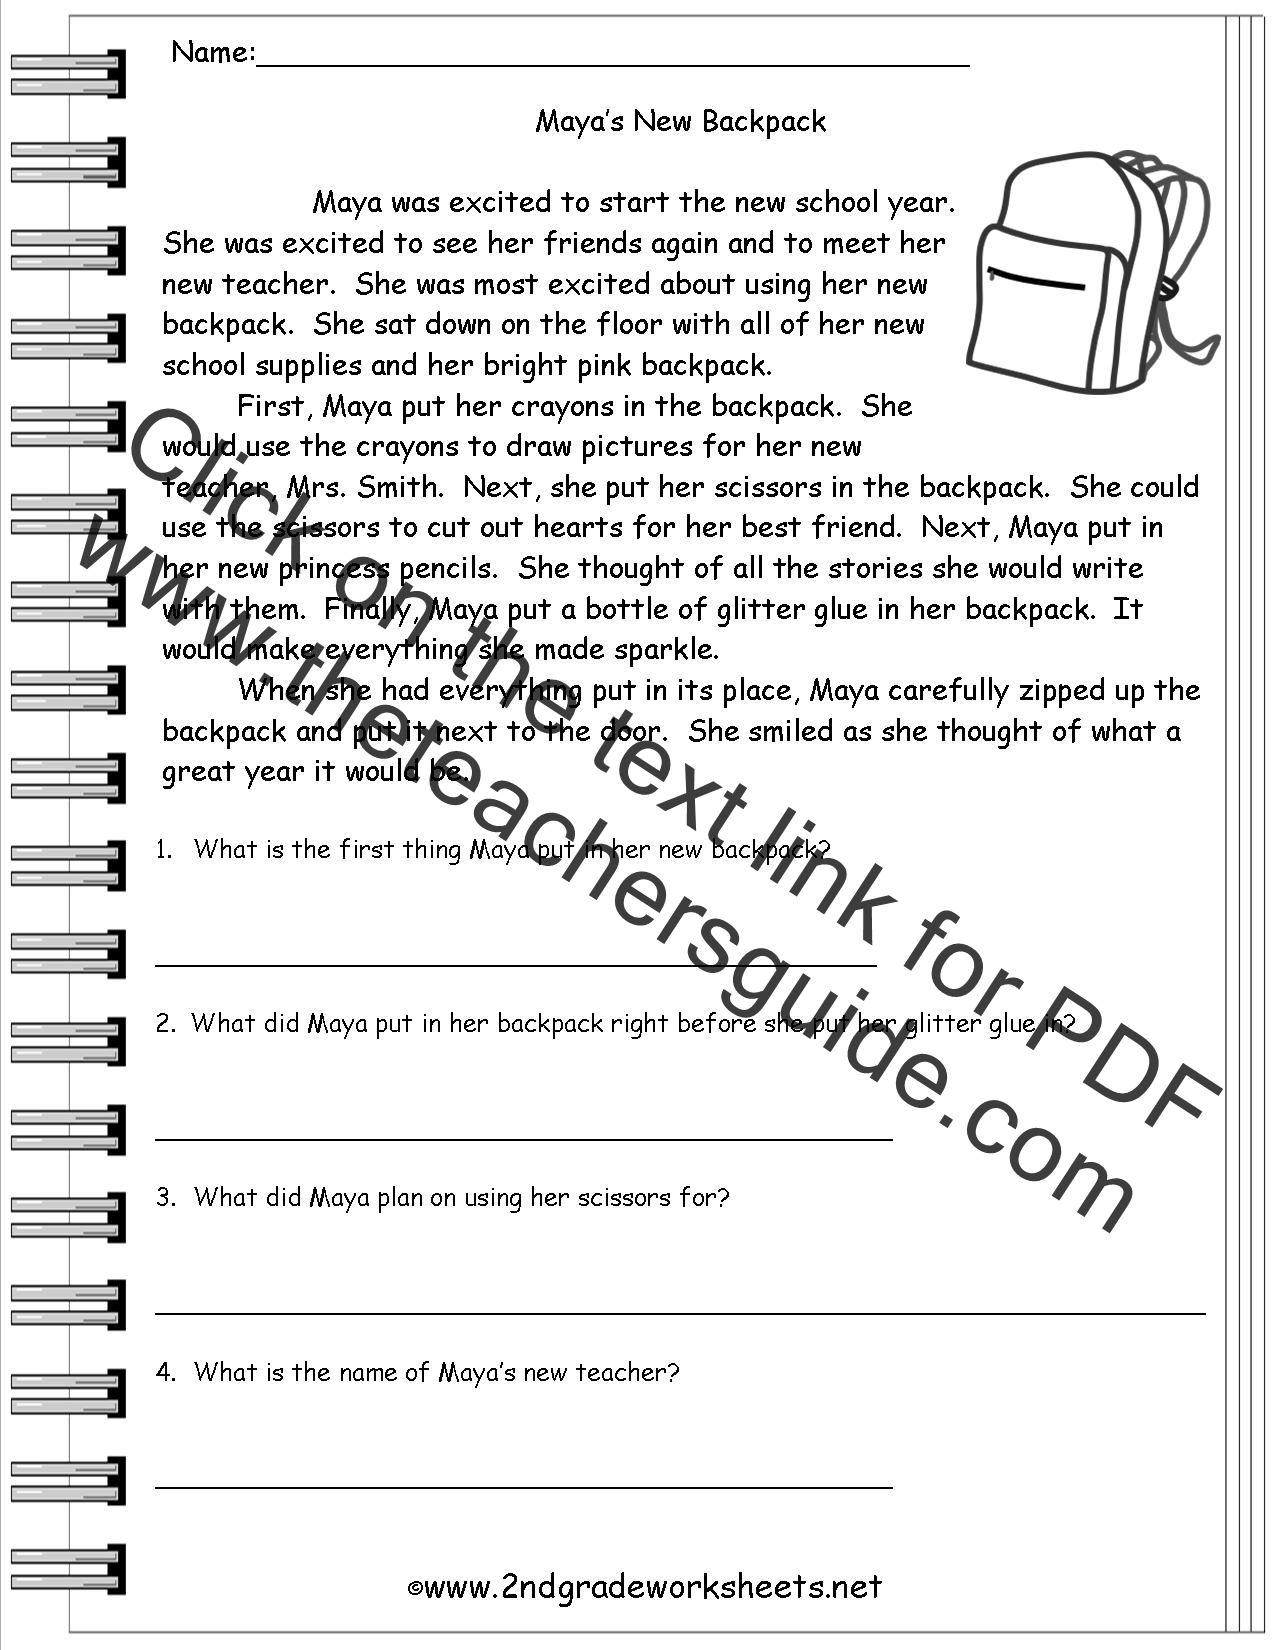 Worksheets Reading Comprehension Worksheet reading worksheeets worksheets